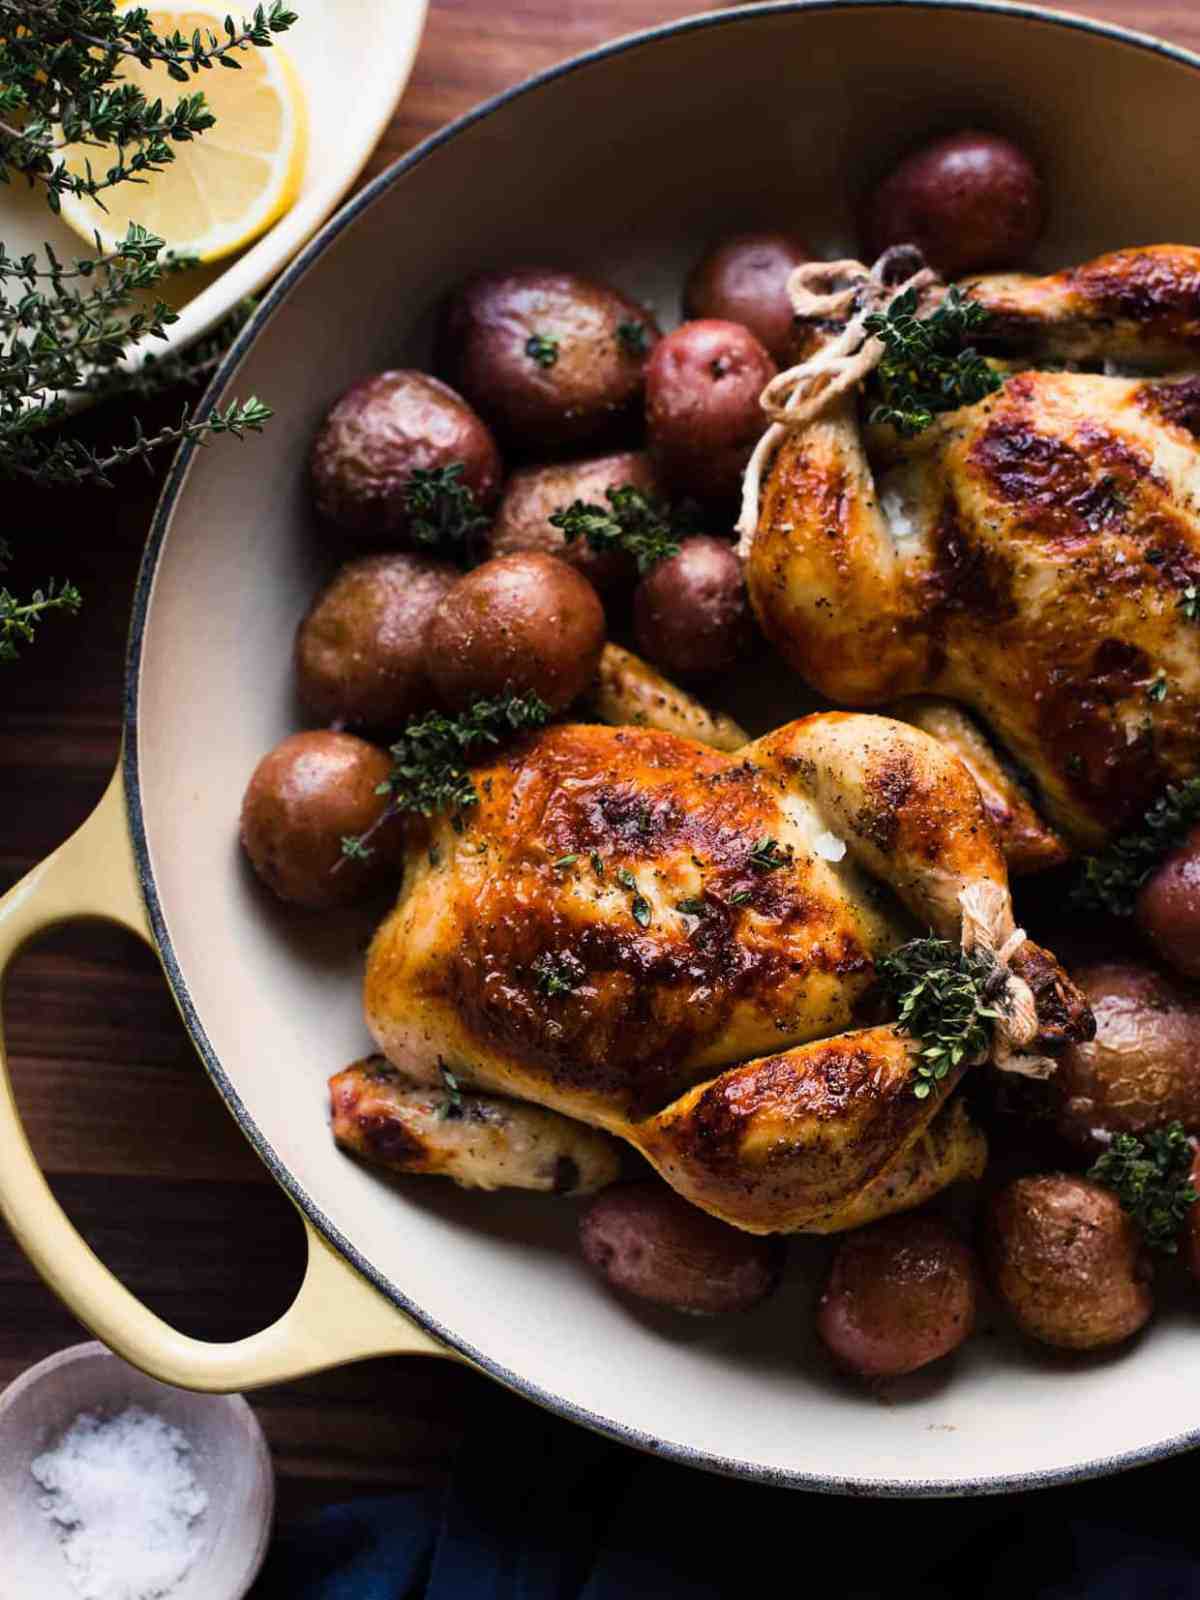 Overhead shot of roasted buttermilk brined Cornish hens on a bed of red potatoes and thyme.